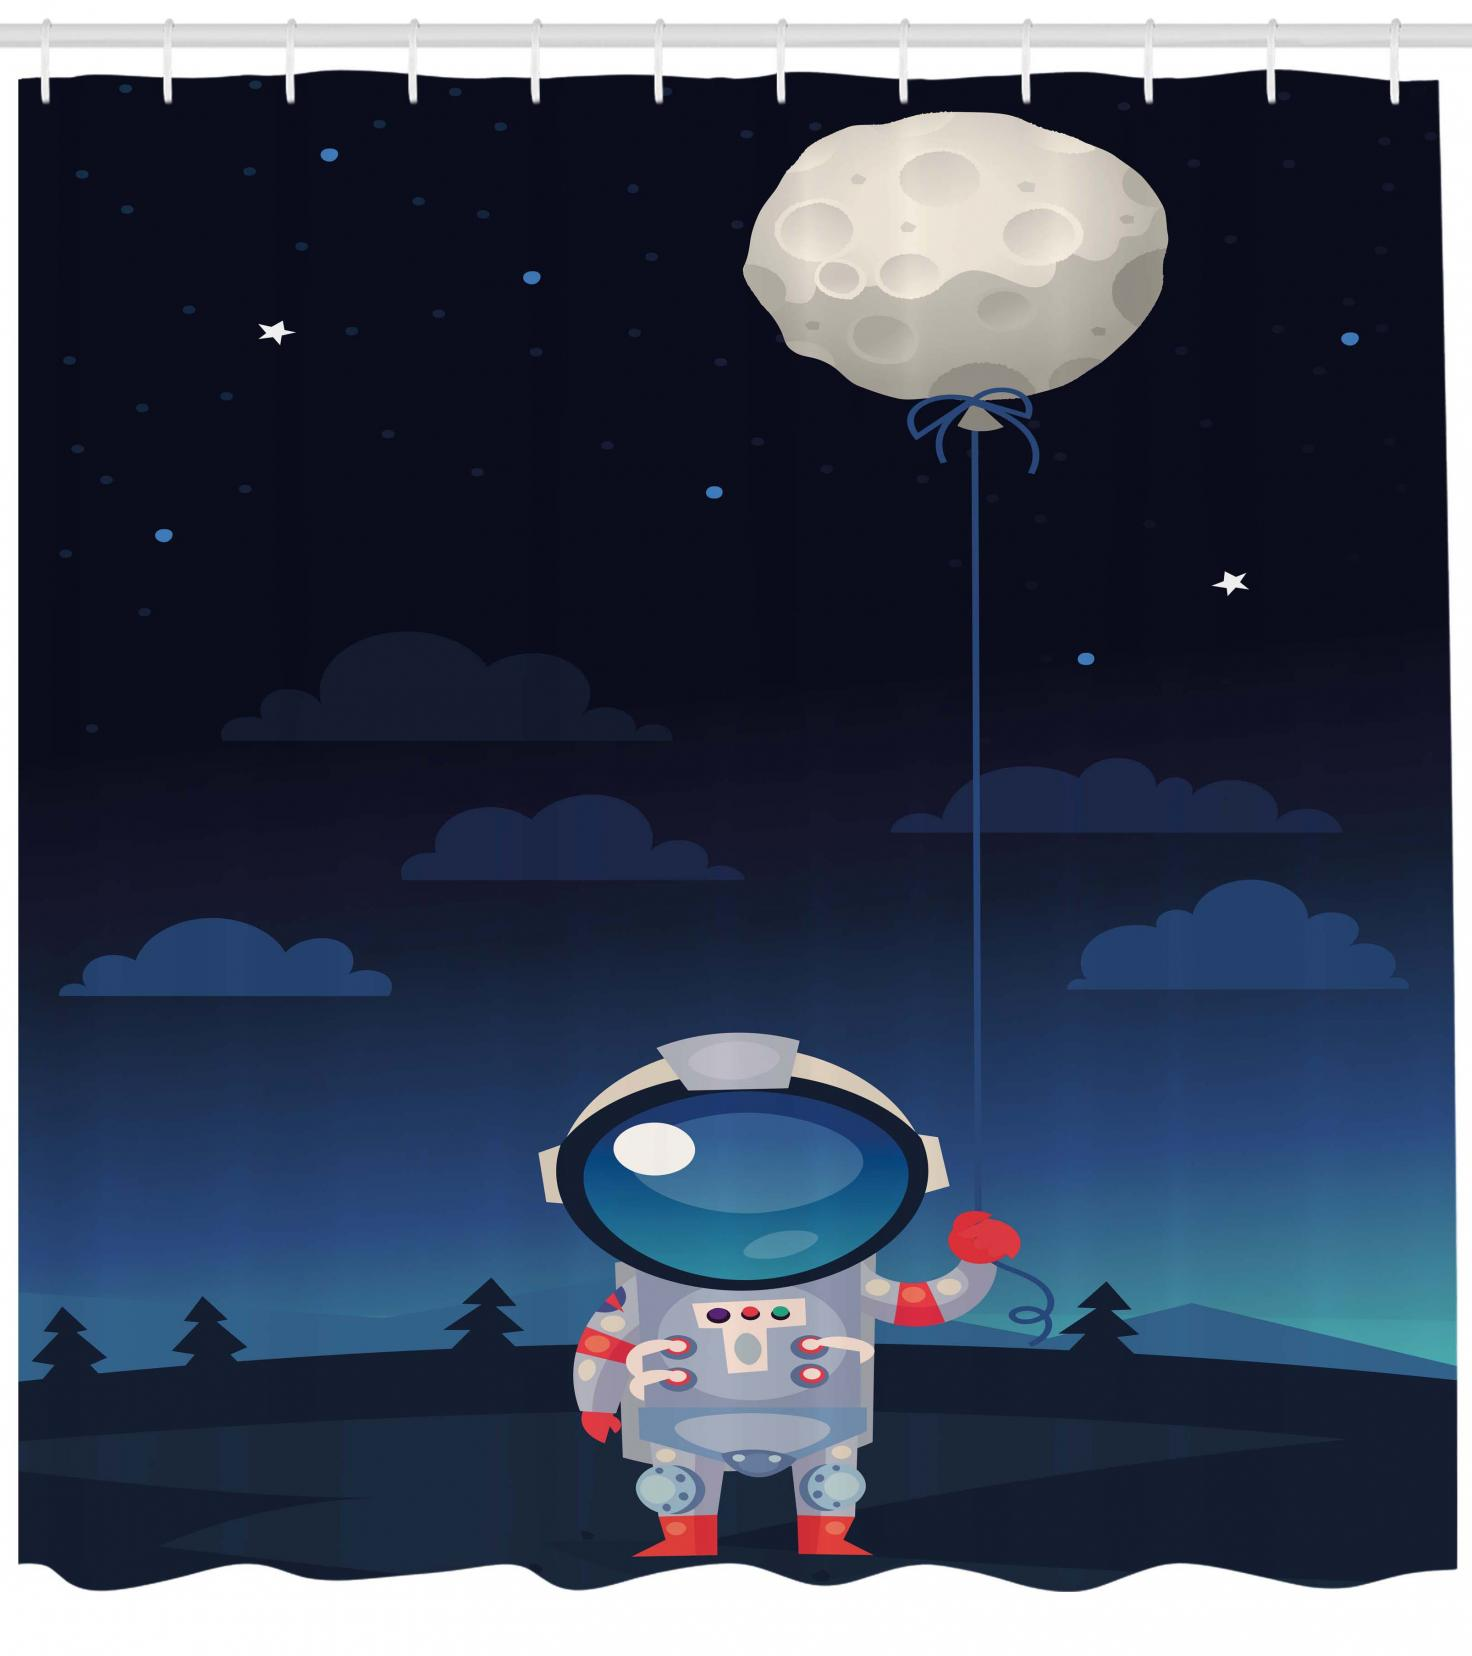 Space Shower Curtain Astronaut in Spacesuit Holding a